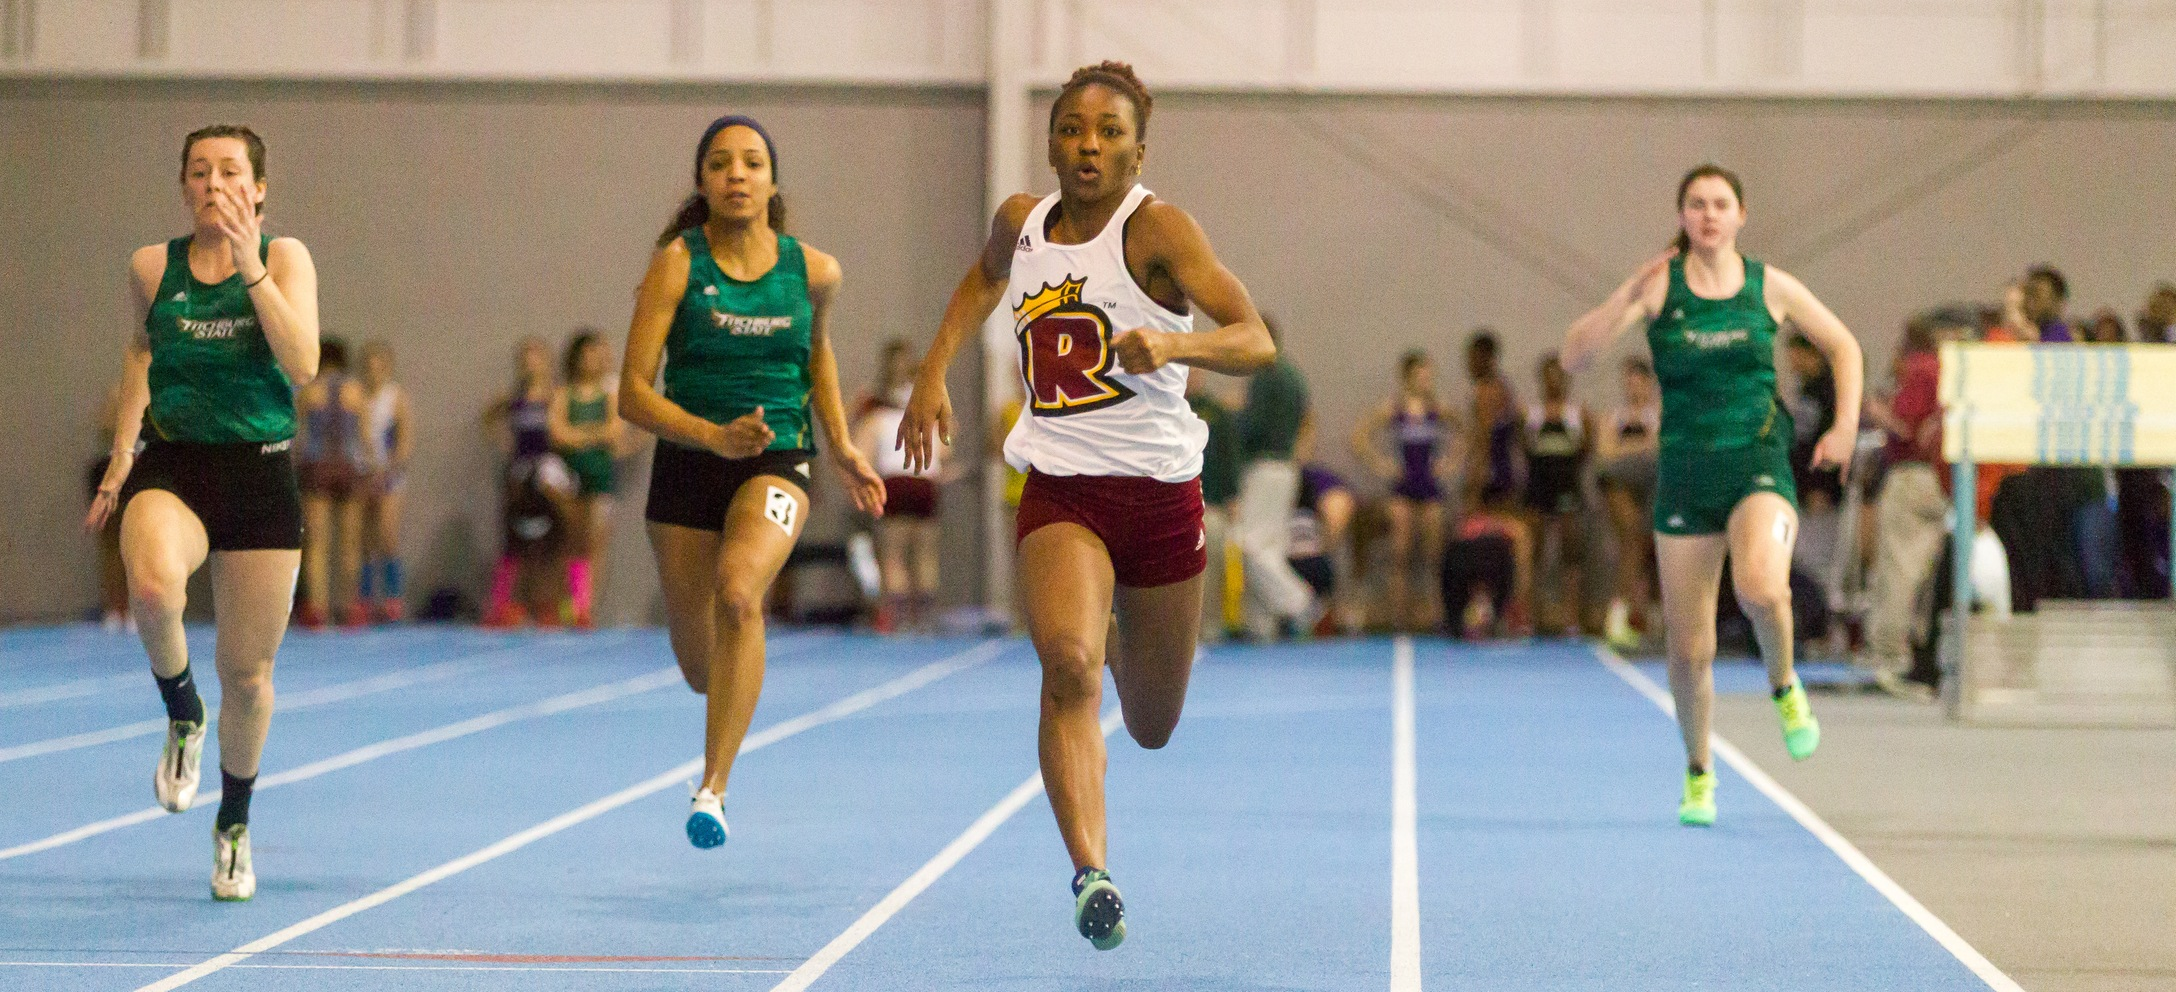 St. Hilaire Leads Pride Track & Field At Tufts Snowflake Invitational